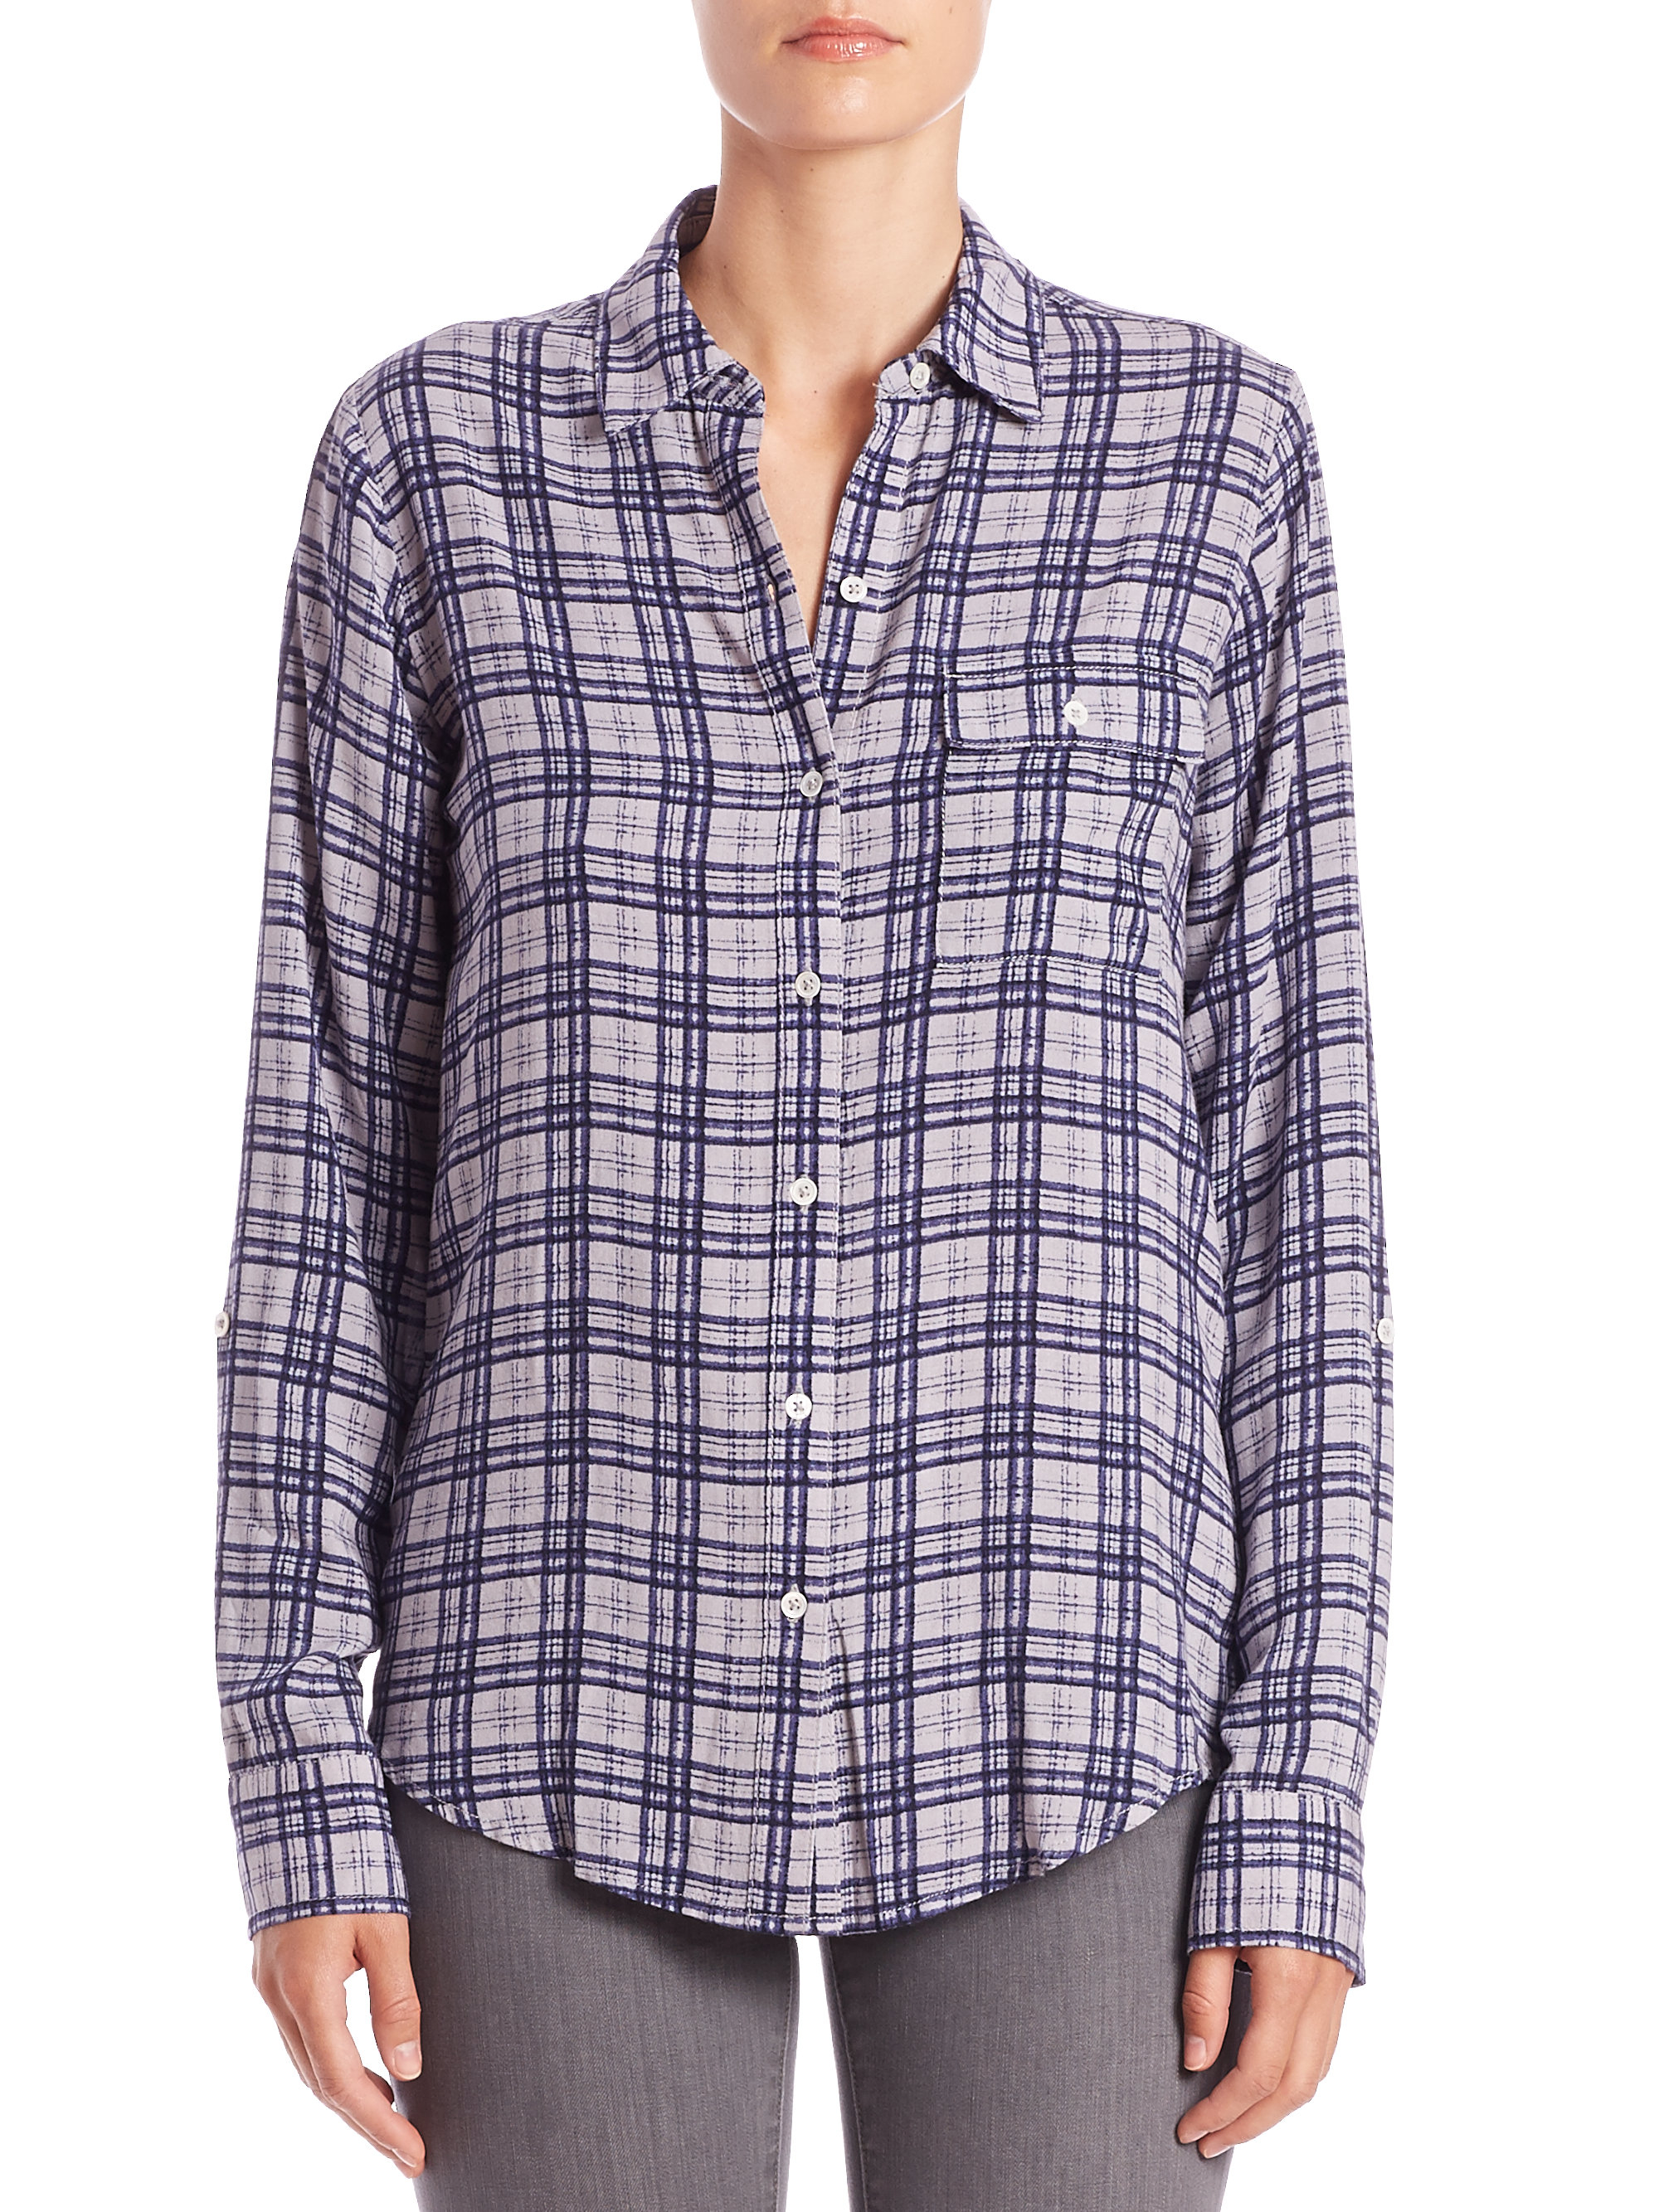 Lyst soft joie onyx plaid shirt in metallic for Soft joie plaid shirt